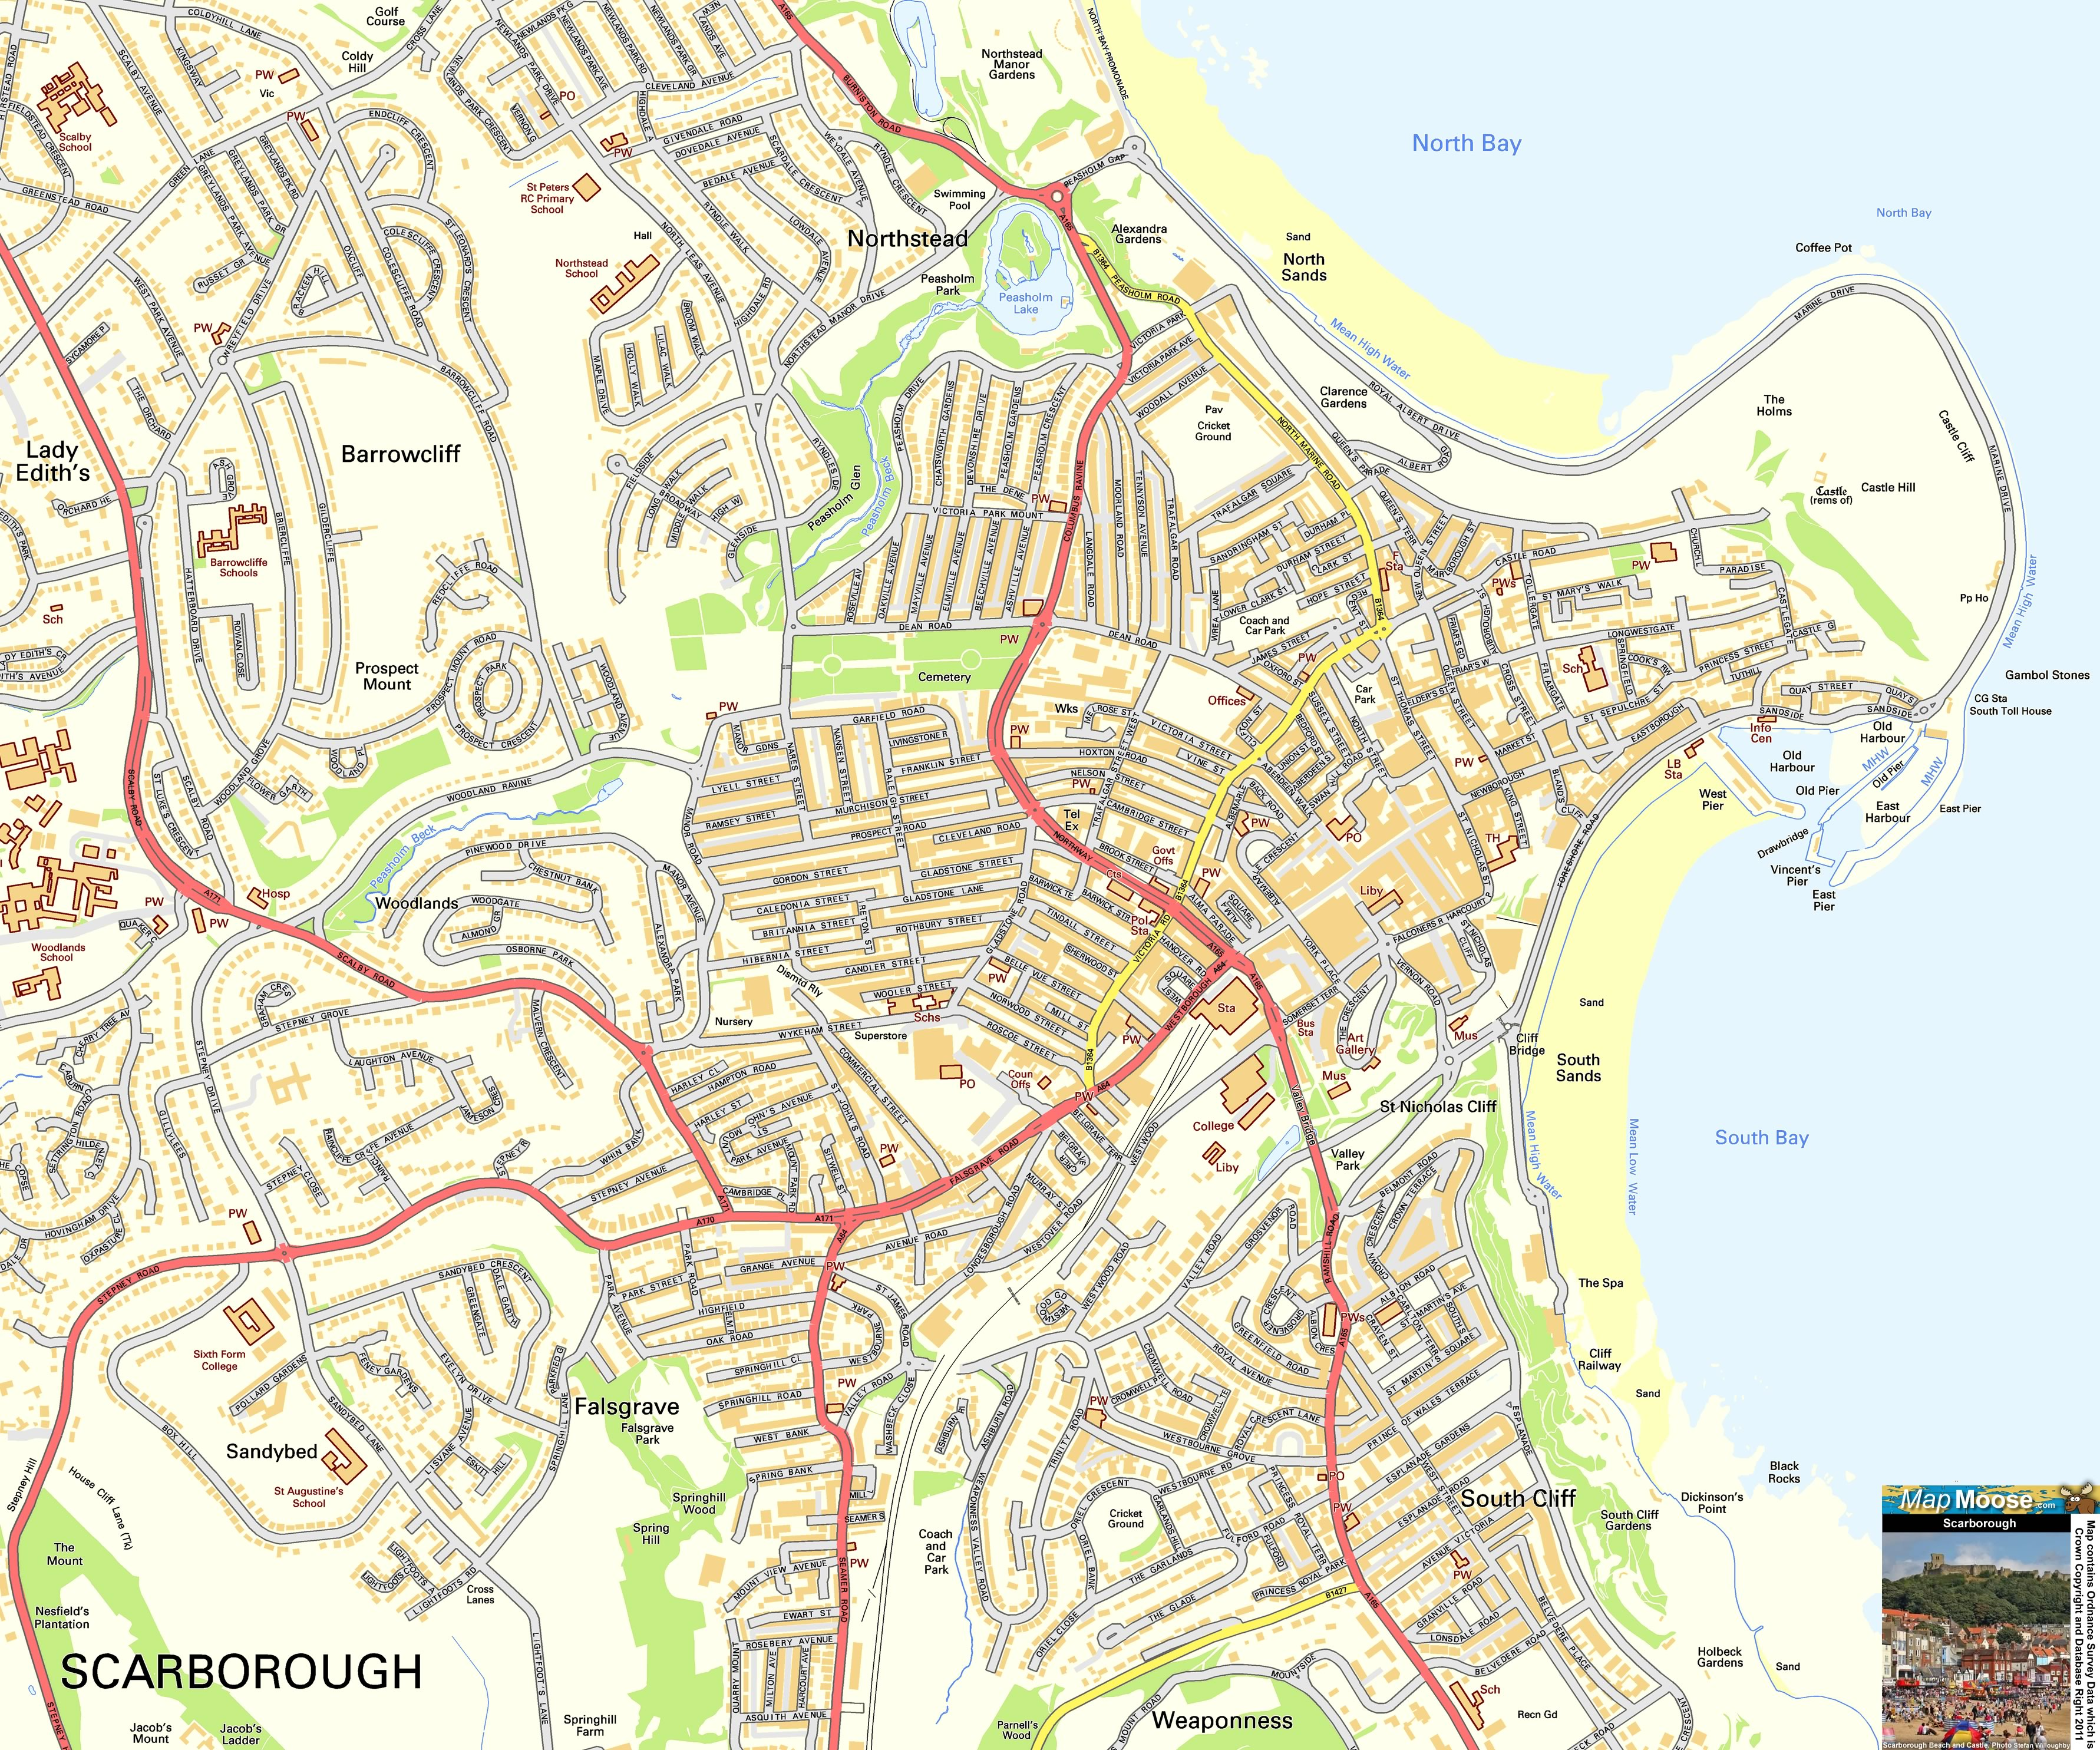 Scarborough Offline Street Map Including Scarborough